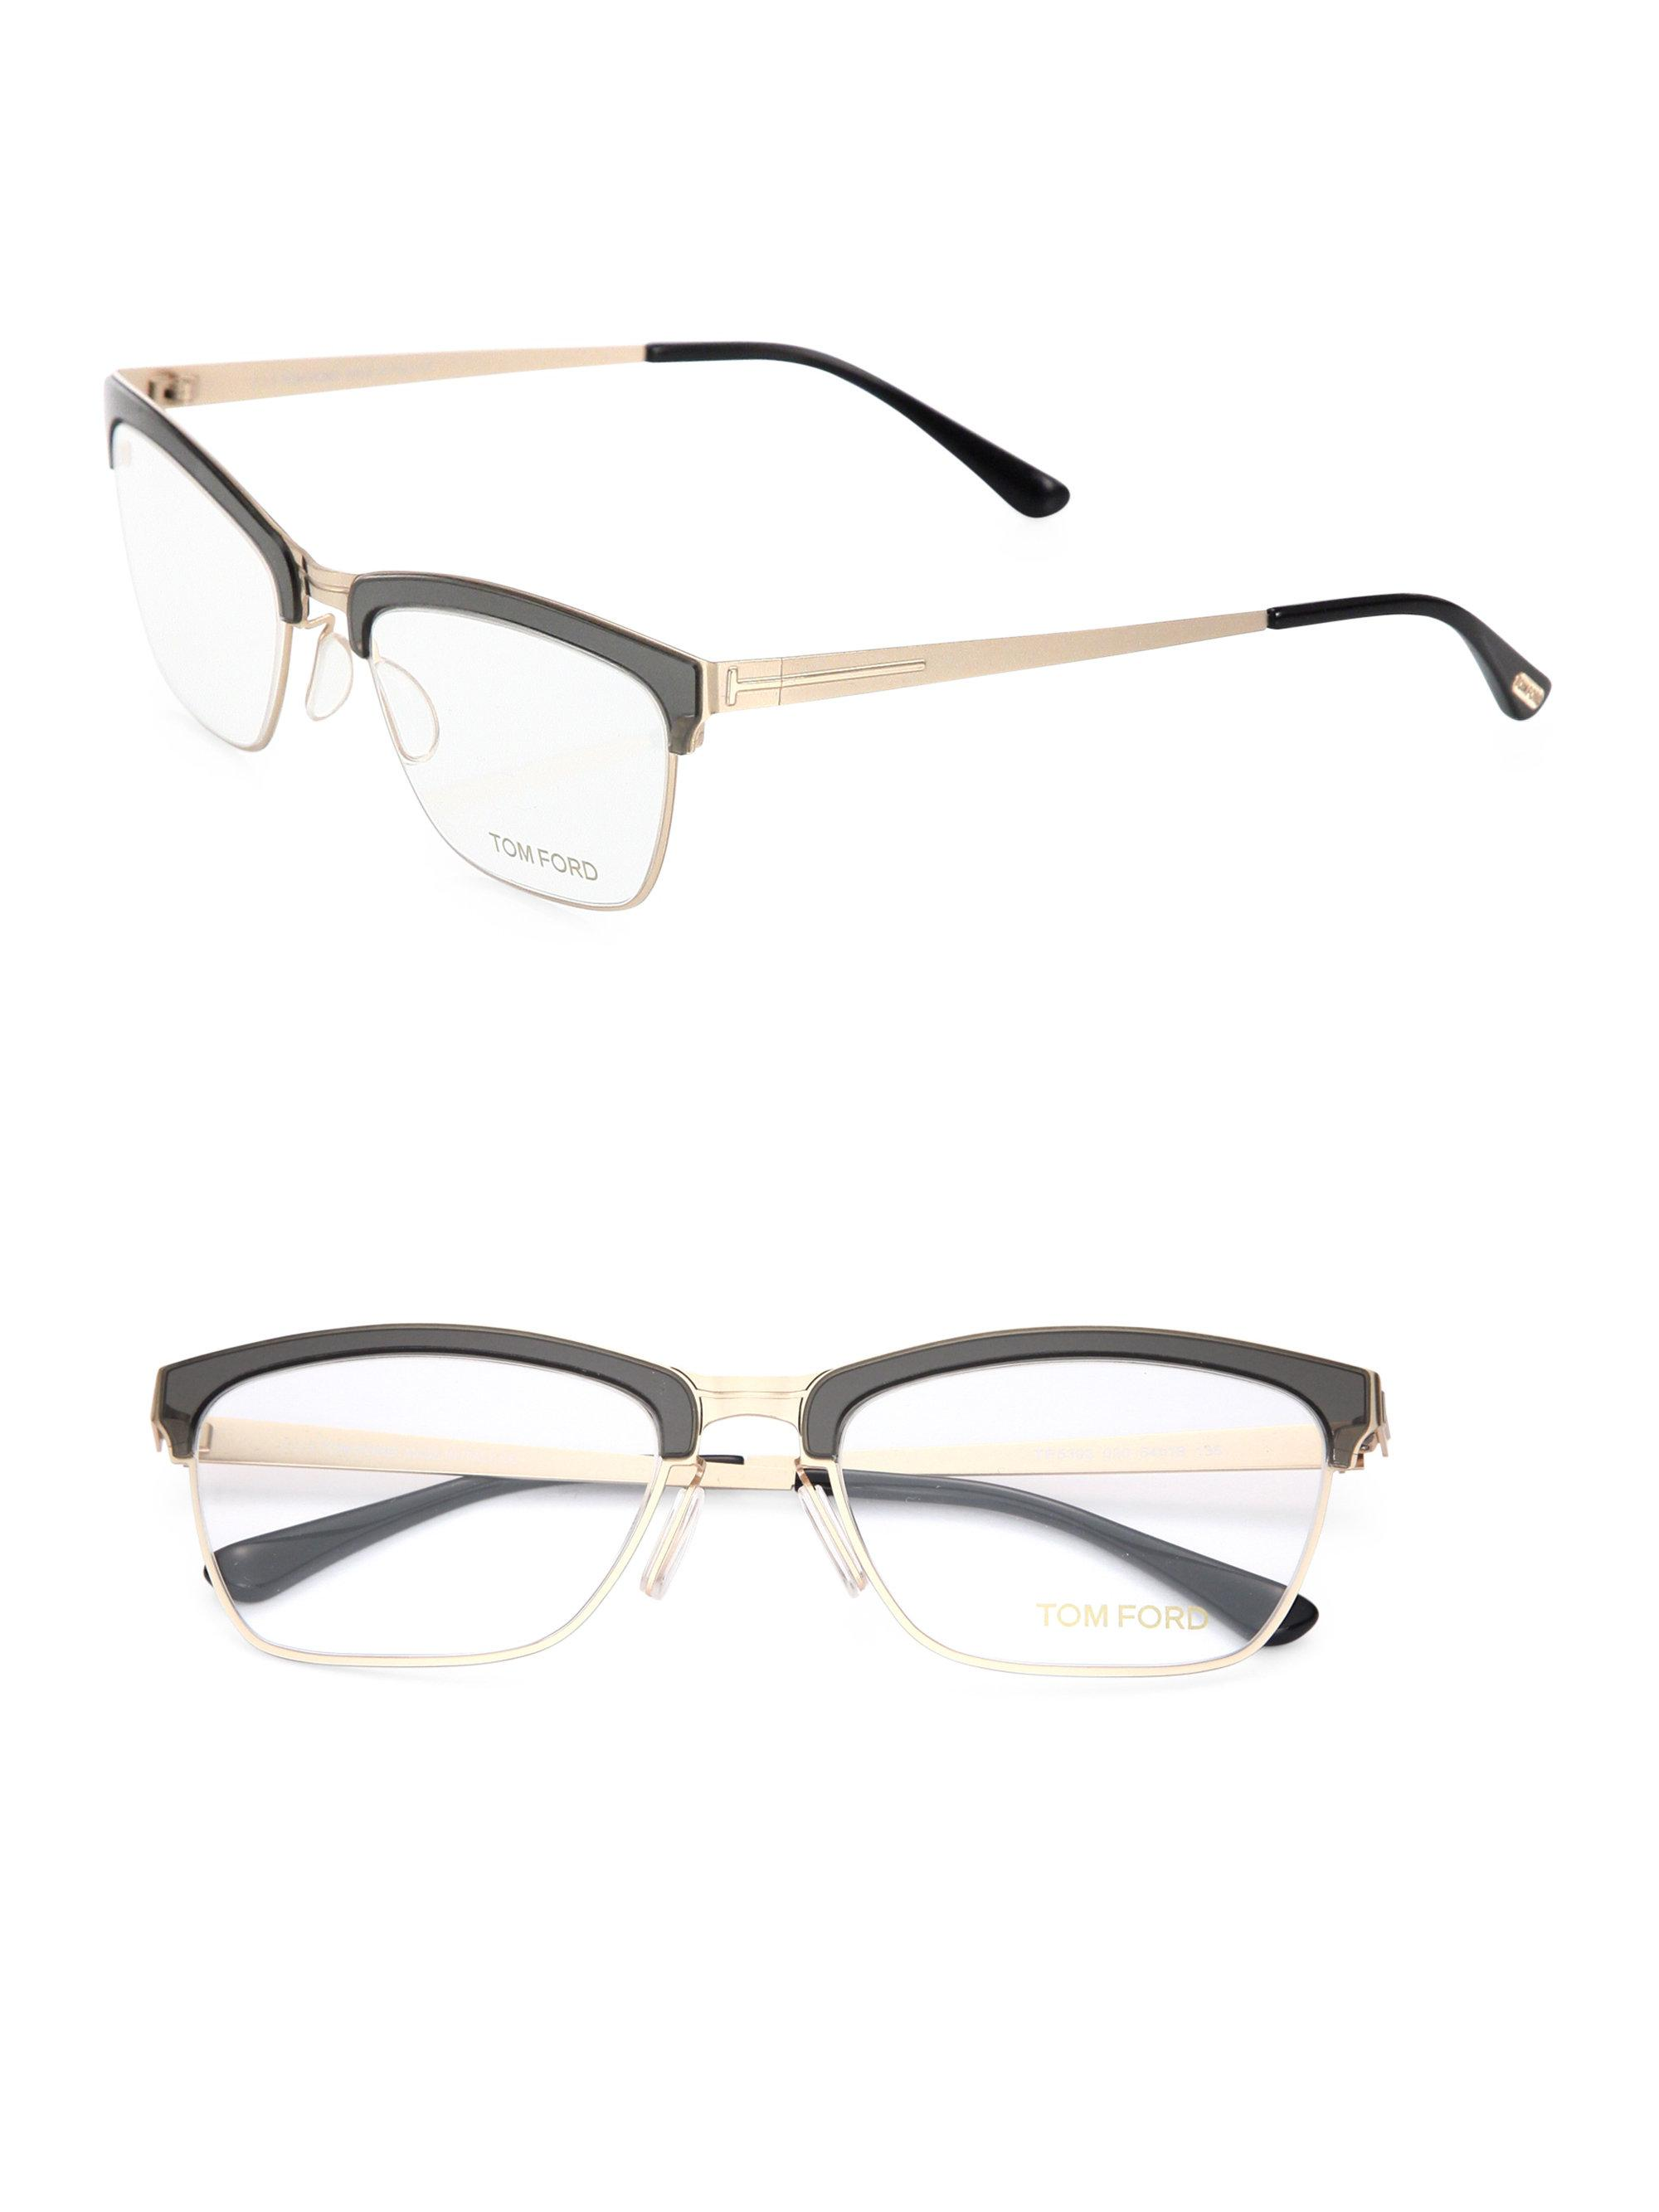 306705e5f85 Tom Ford 54mm Metal Soft Square Optical Glasses in Metallic - Lyst